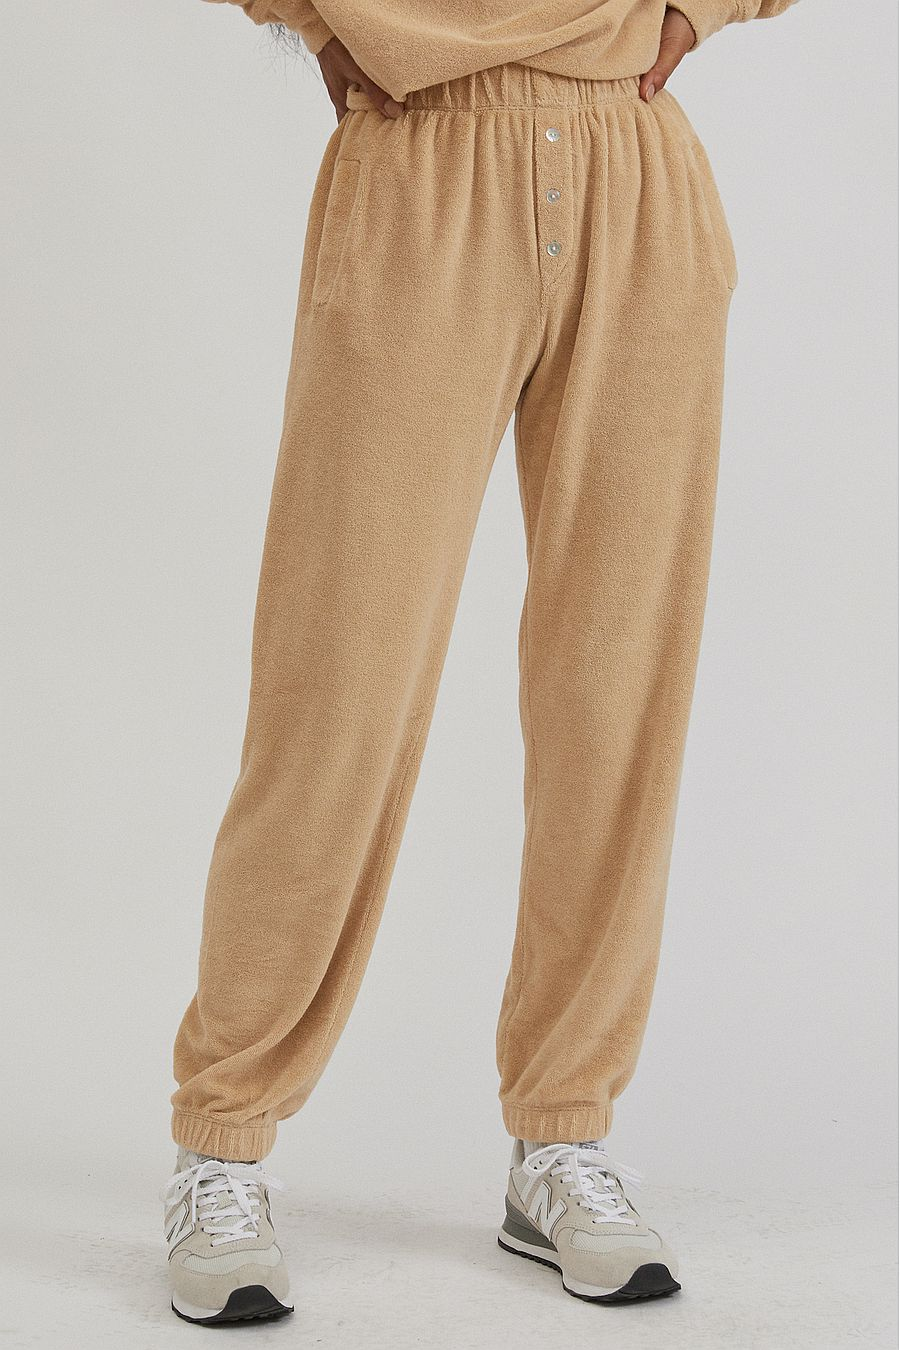 DONNI. Terry Henley Sweatpant - Latte